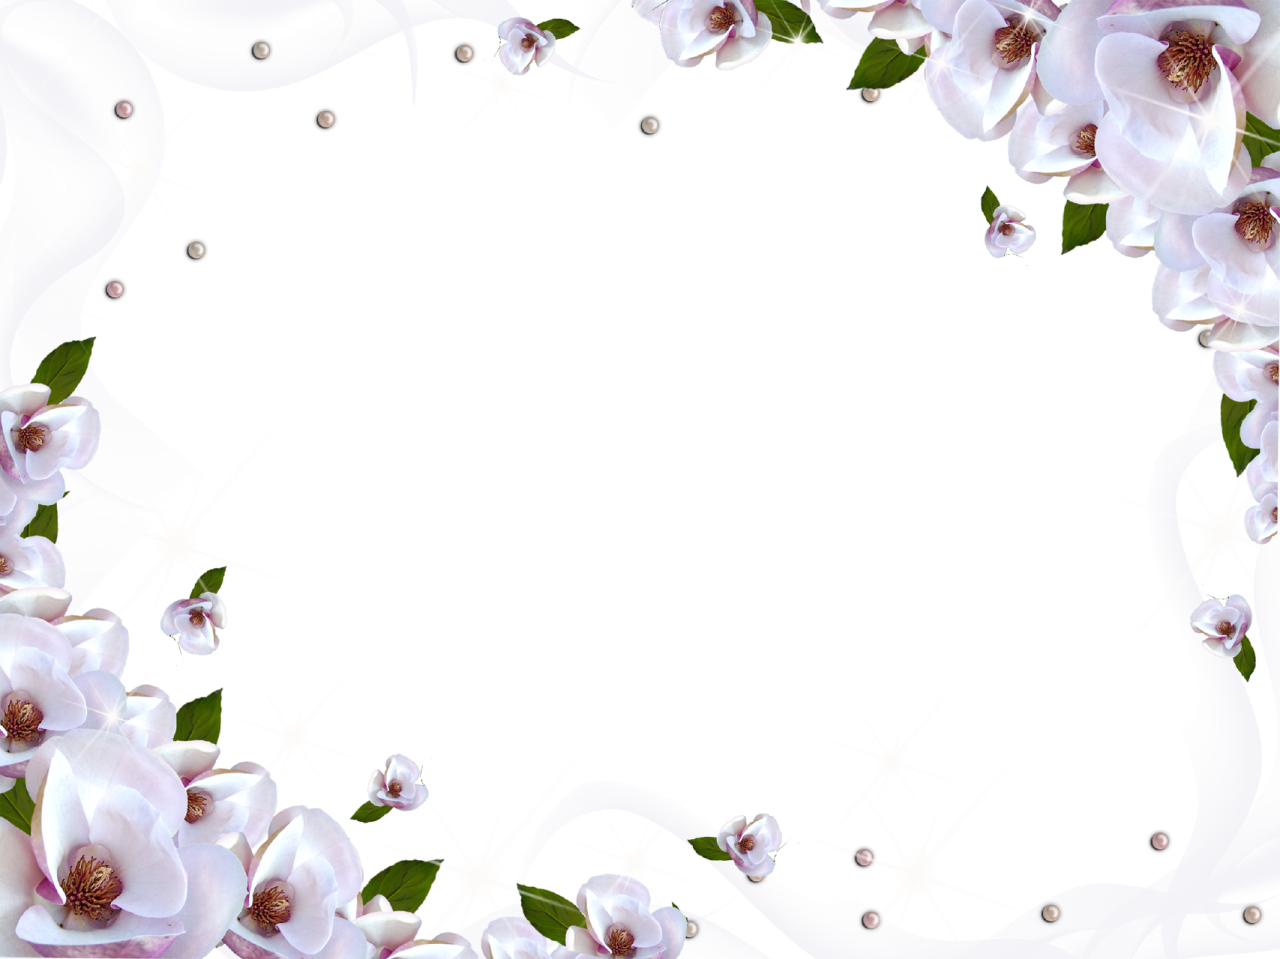 Download White Flower Frame Image Hq Png Image In Different